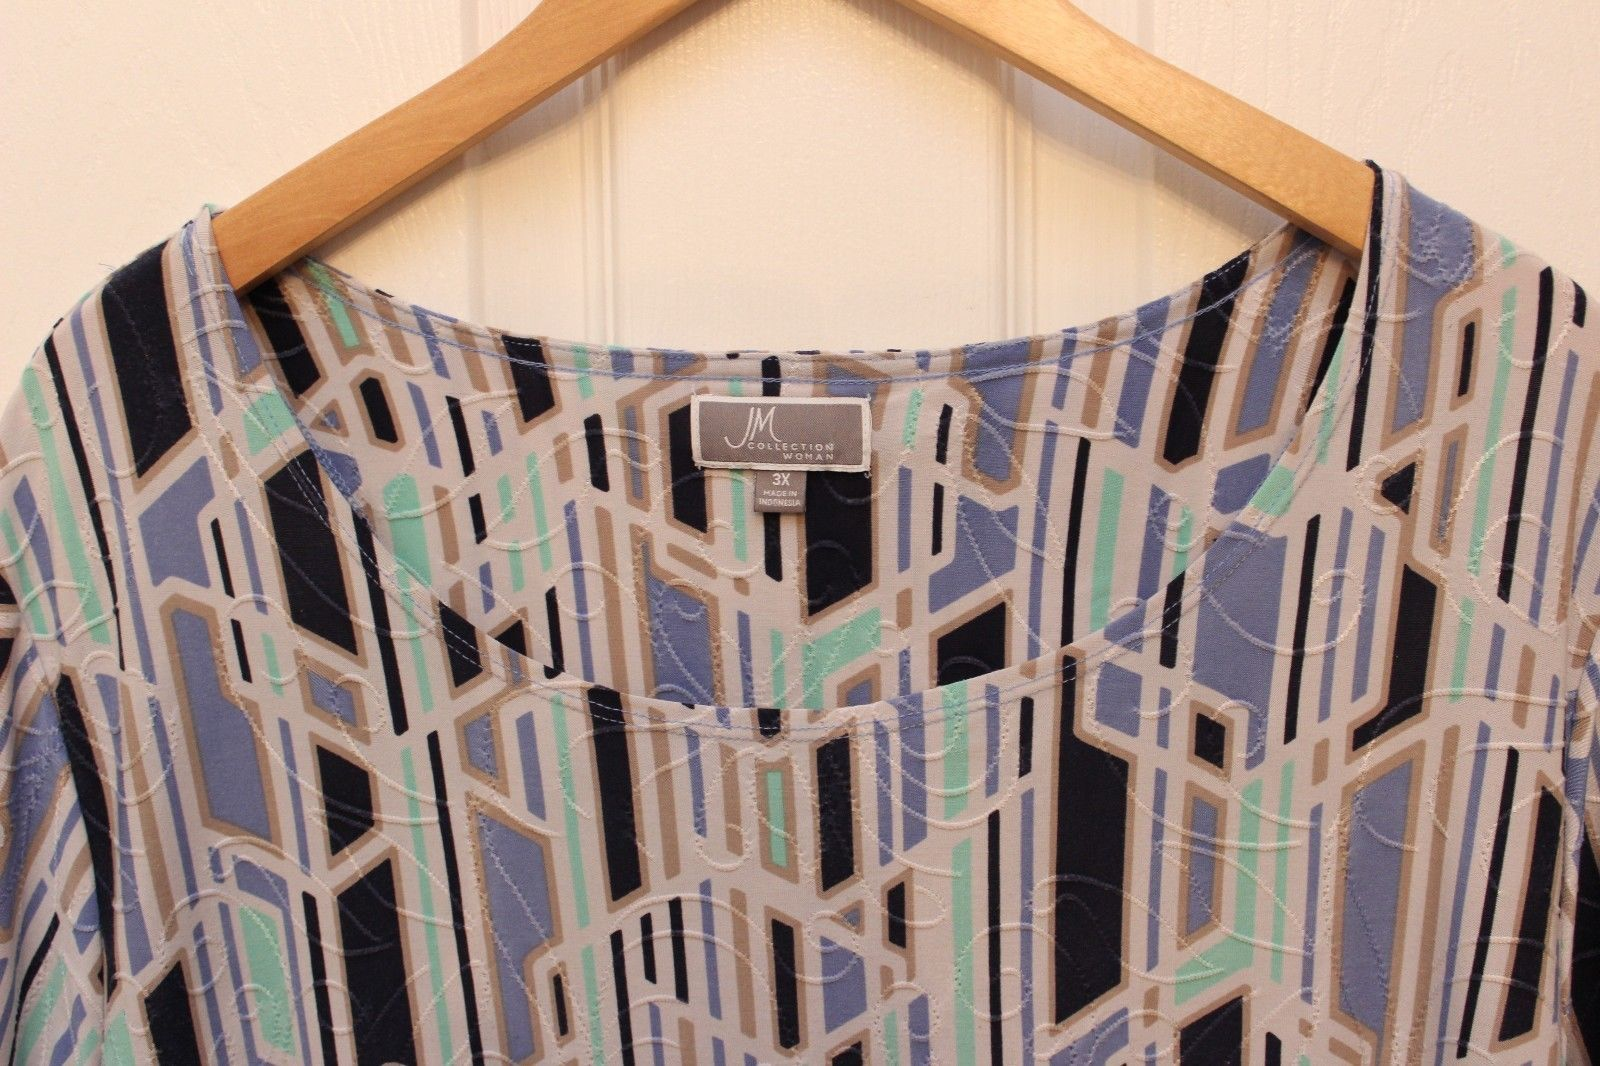 JM COLLECTION TOP Plus 3X Blouse Blue Tan Geometric Linear Print Tunic Pullover